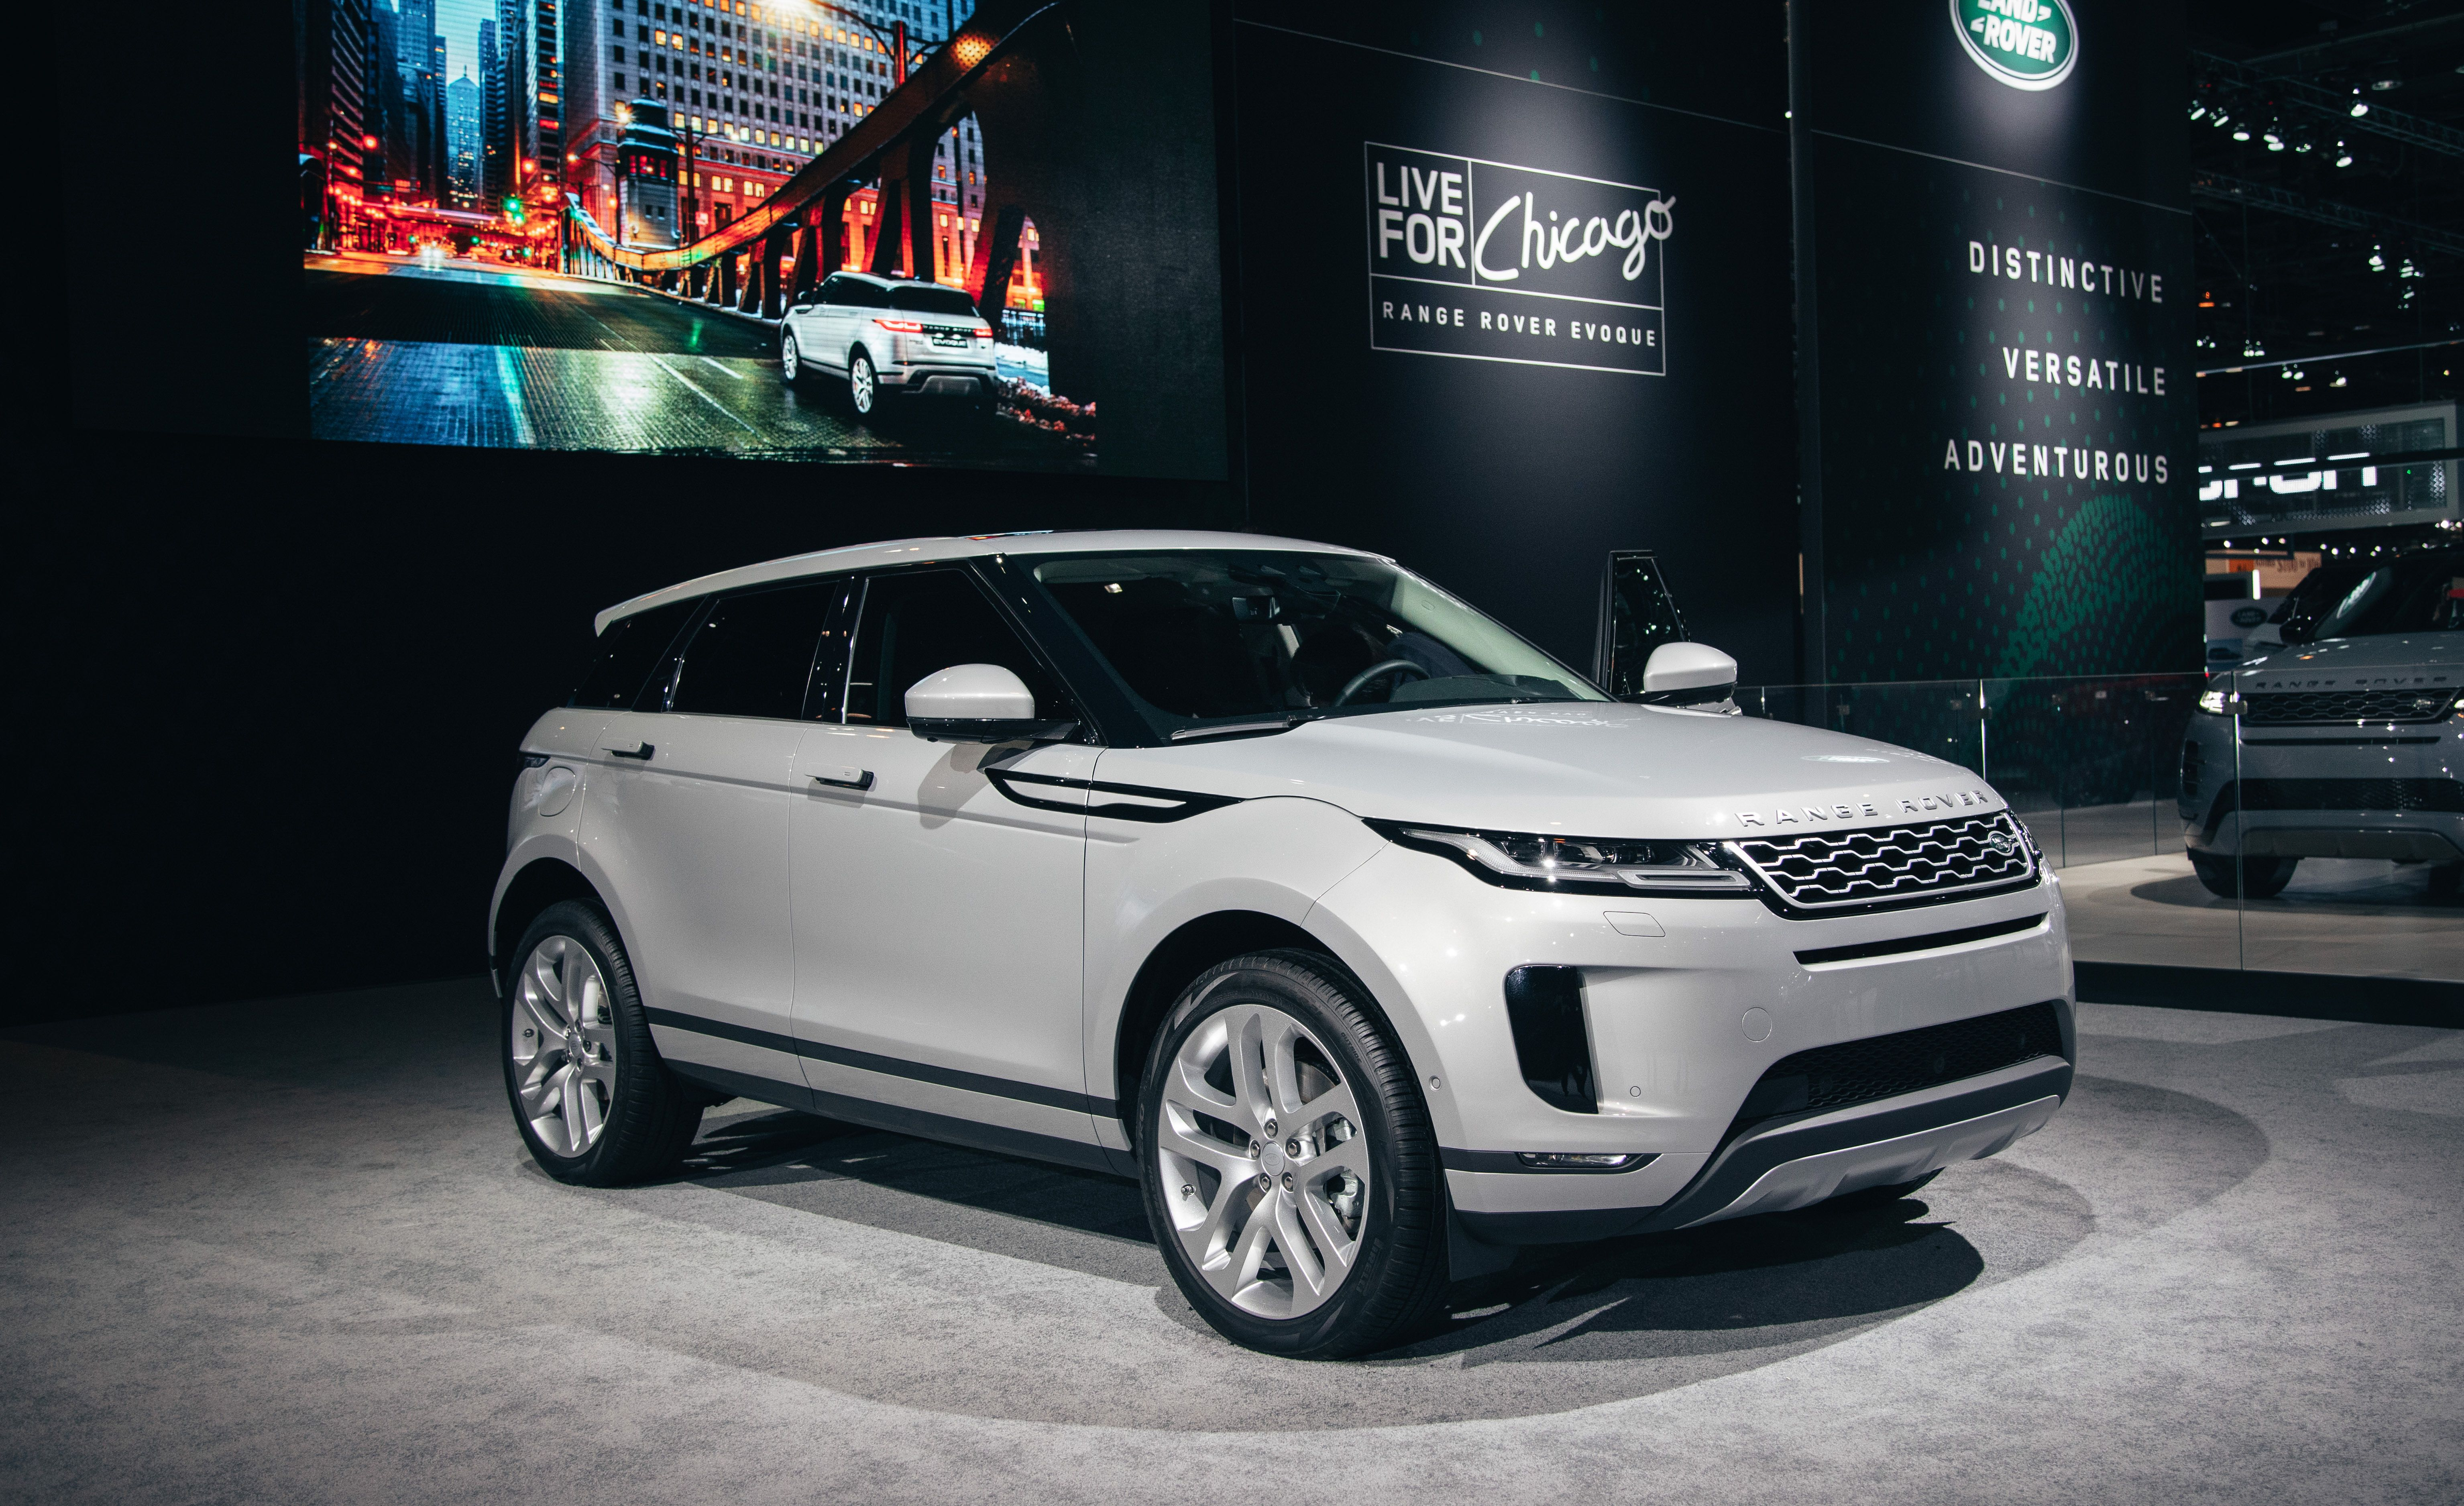 2020 Range Rover Evoque Options And Price >> 2020 Range Rover Evoque Pricing And Performance Specs Announced